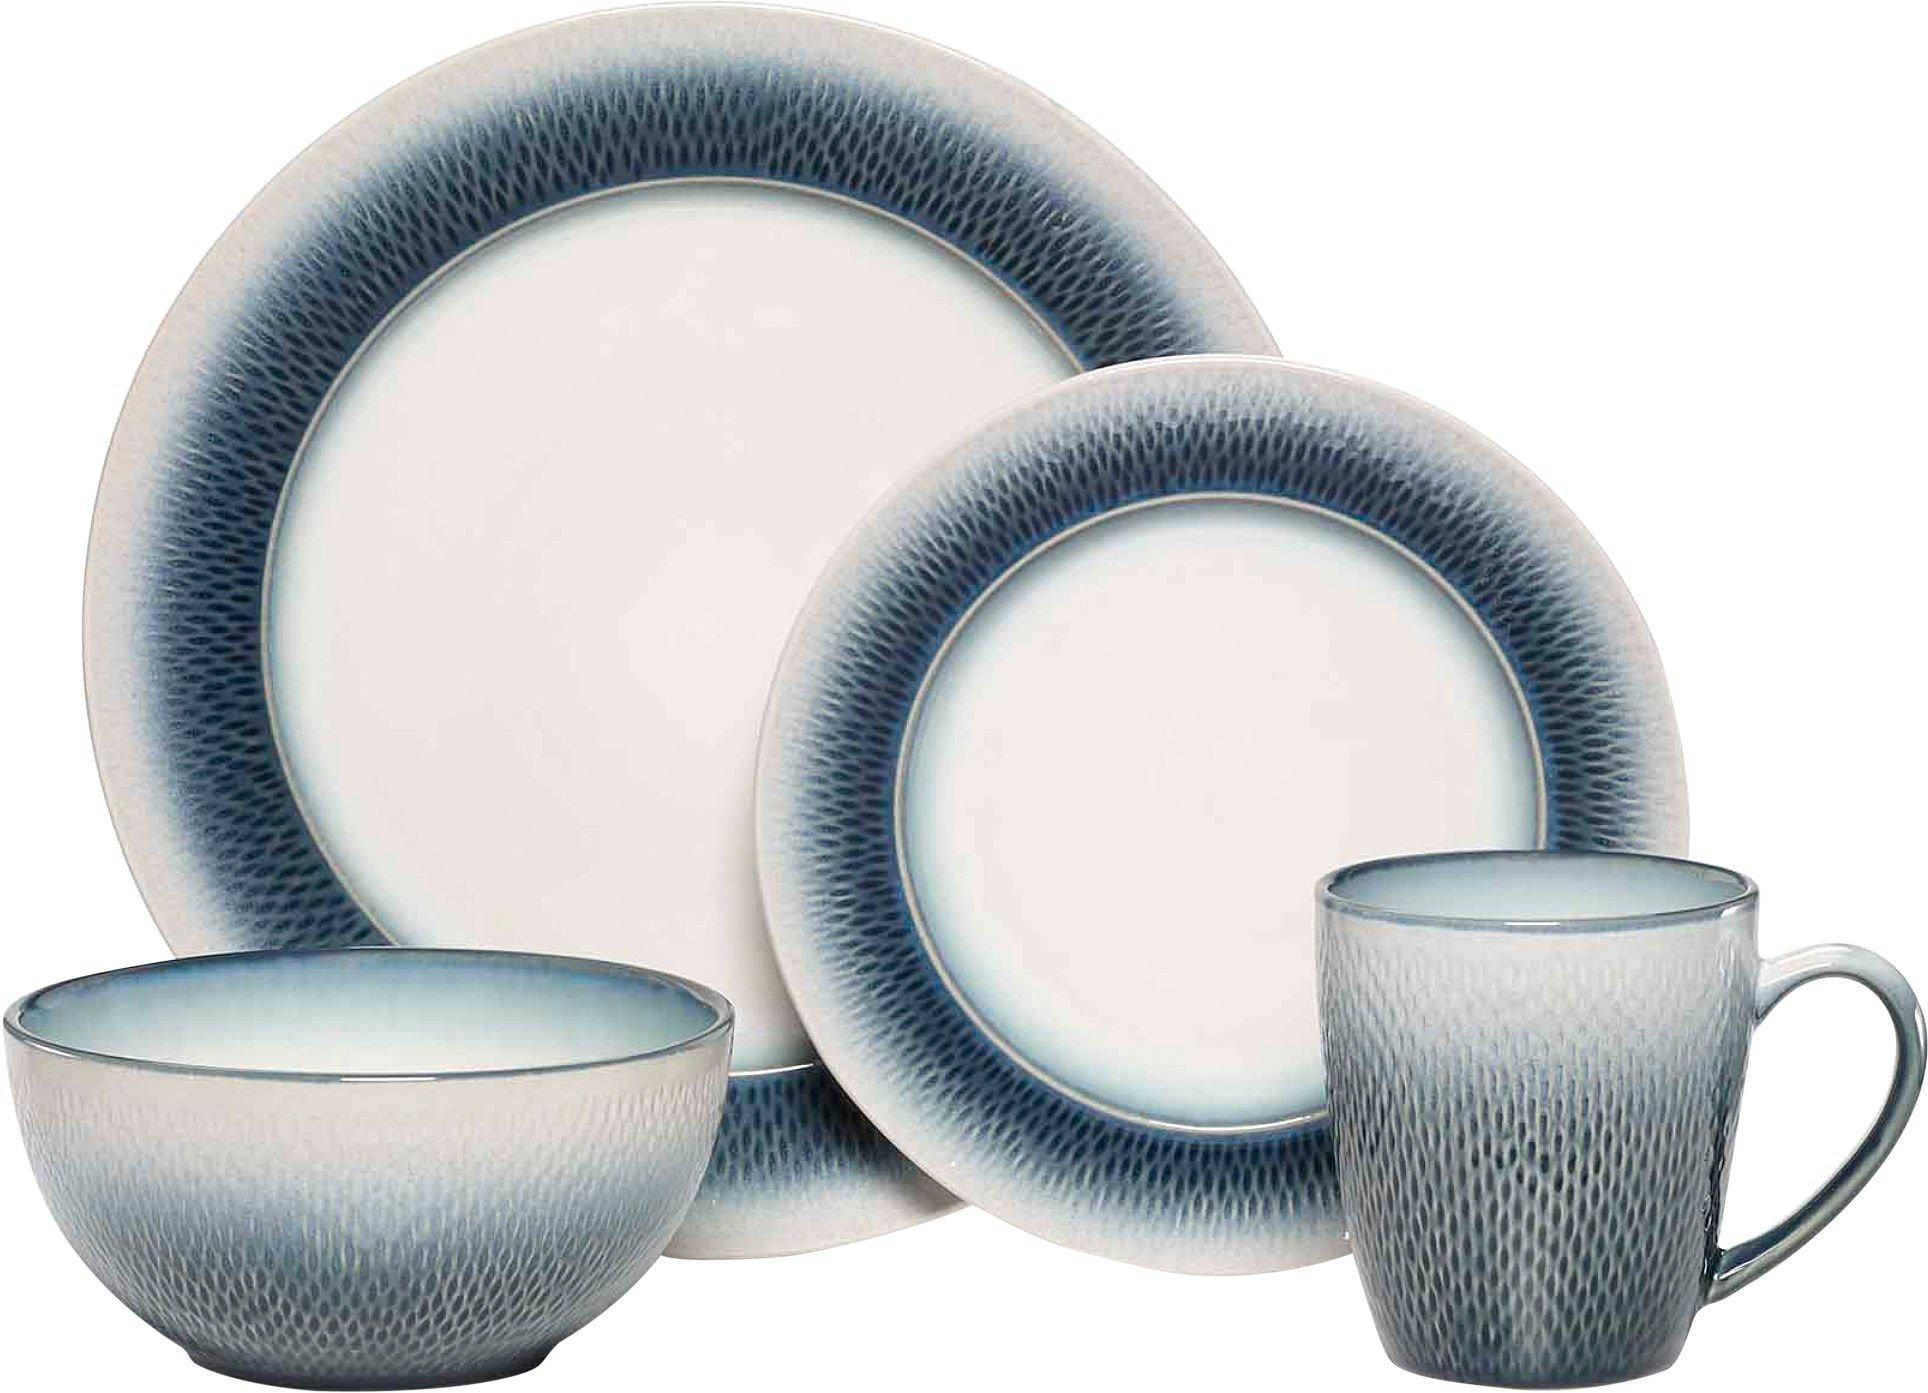 Pfaltzgraff 16-pc. Eclipse Blue Dinnerware Set  sc 1 st  Bealls Florida & Pfaltzgraff 16-pc. Eclipse Blue Dinnerware Set | Bealls Florida